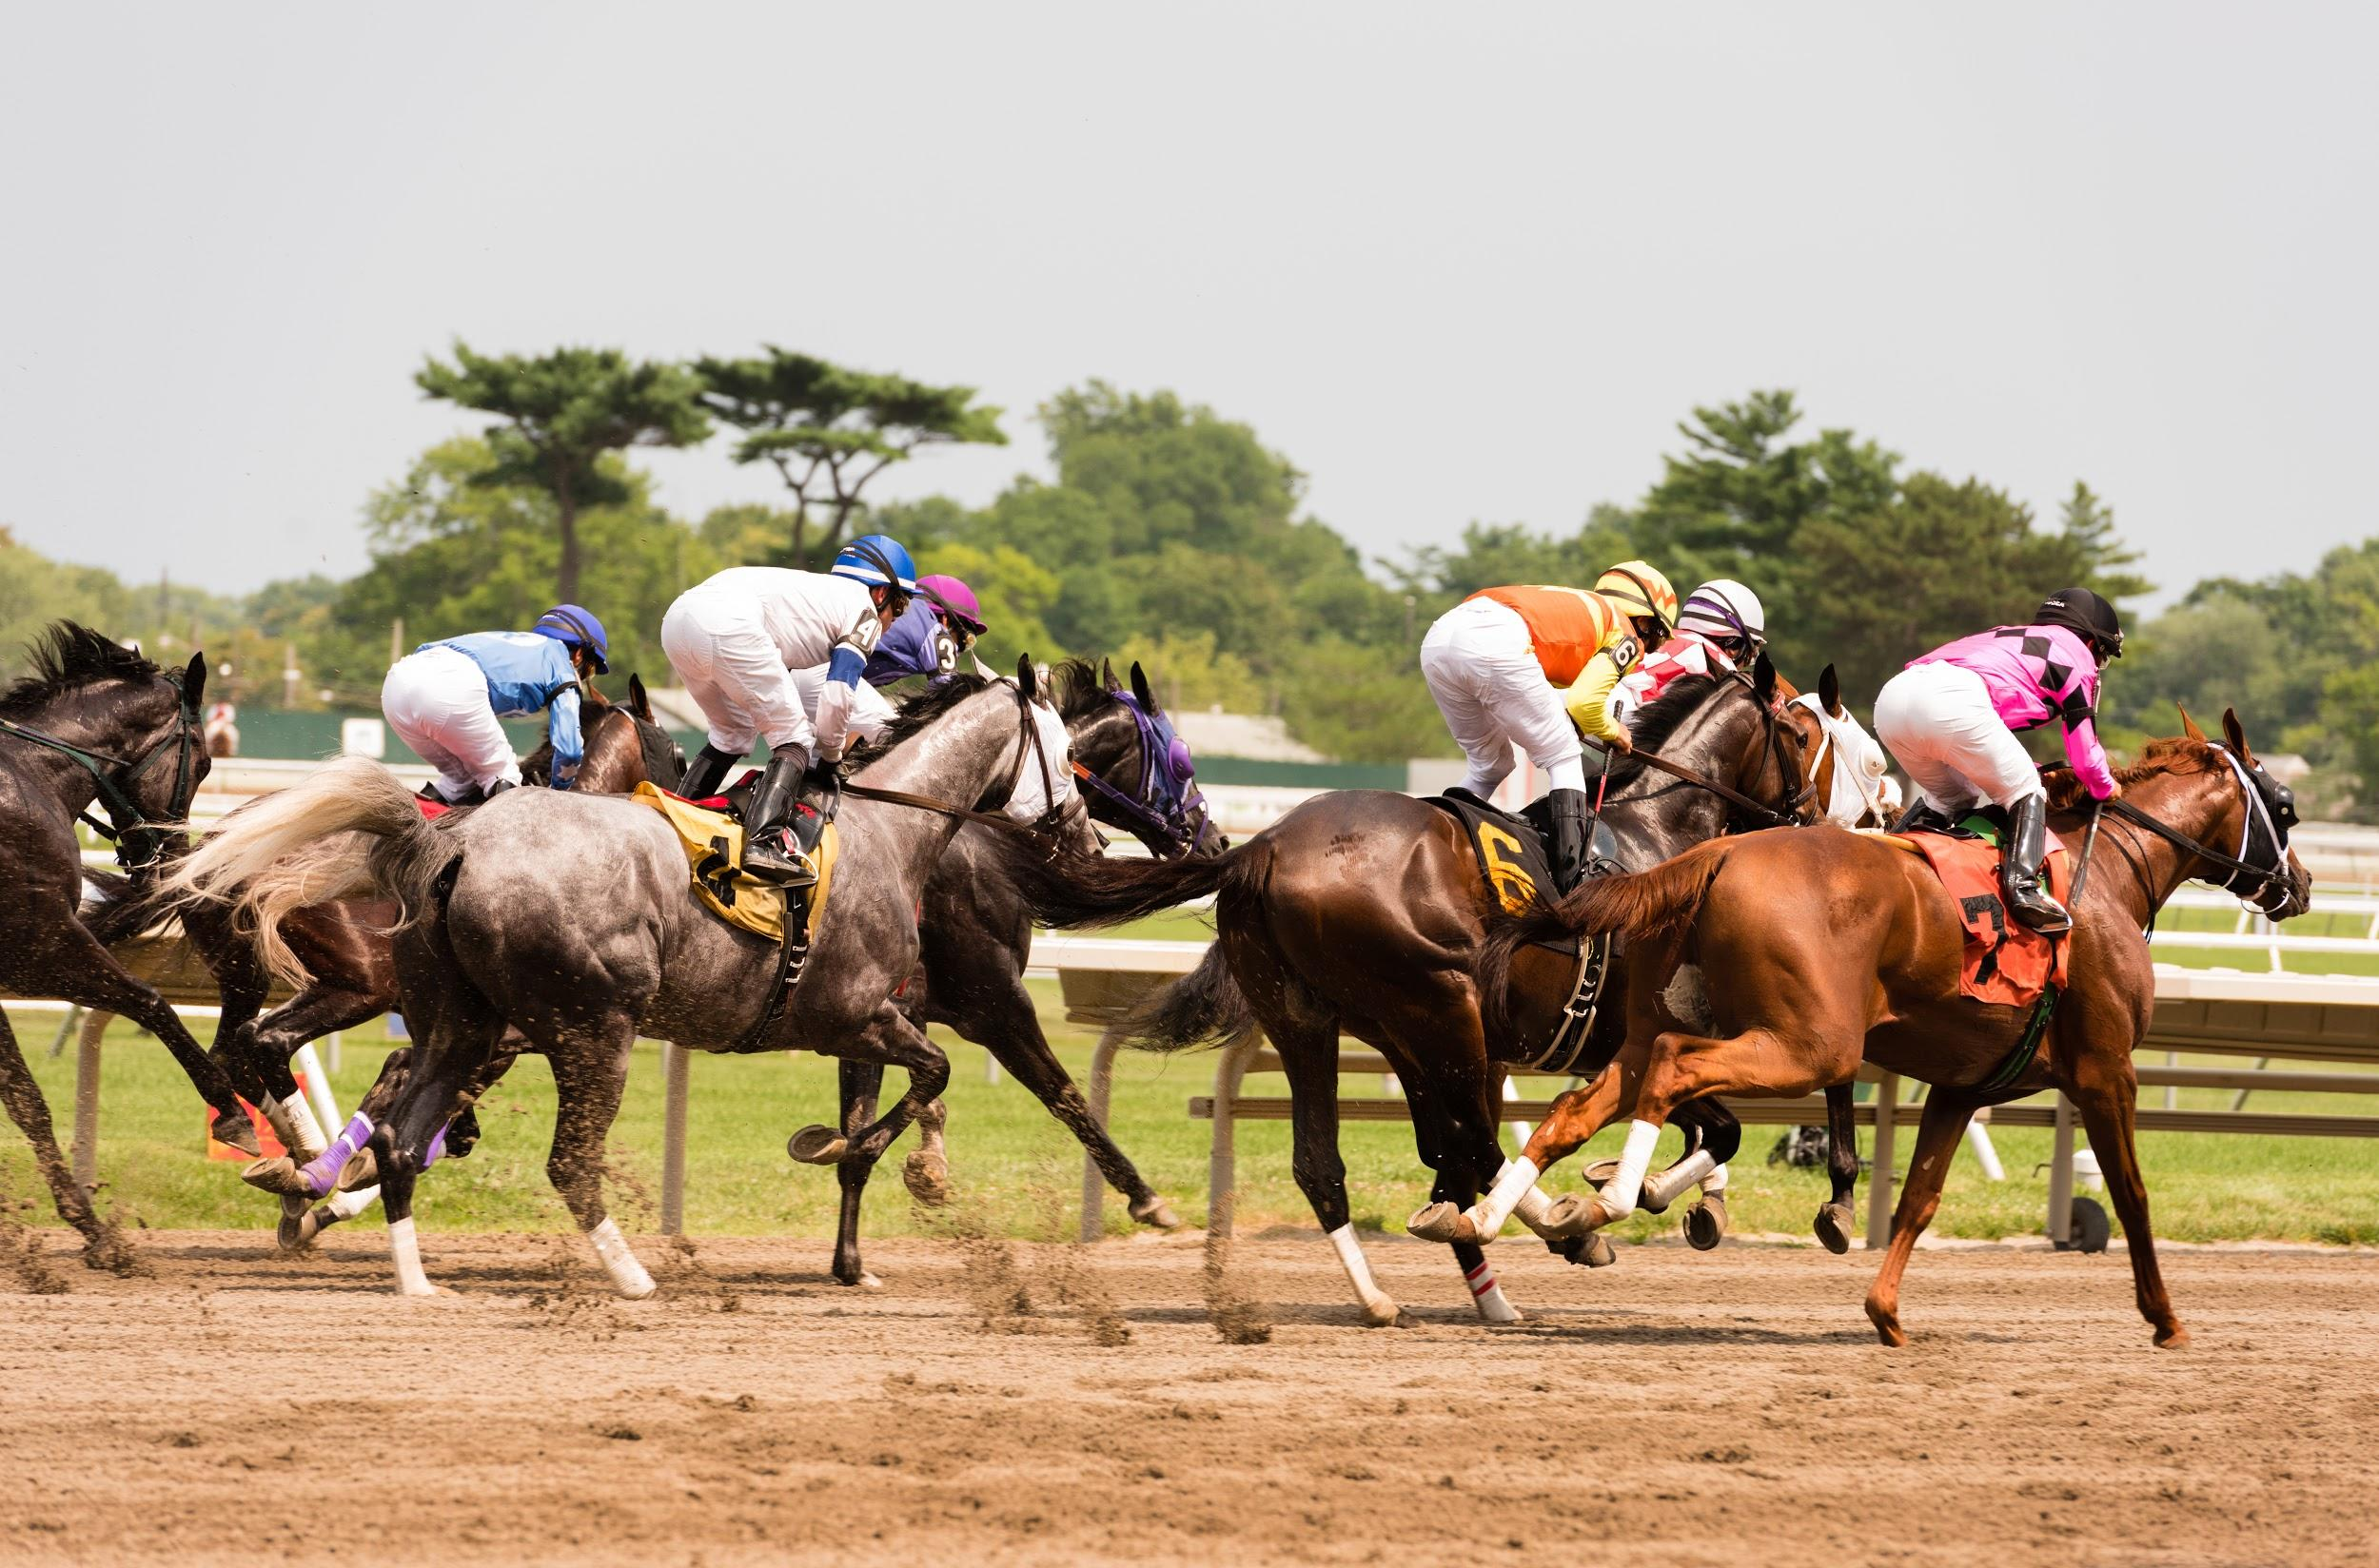 Horse Racing Winning Distances Explained